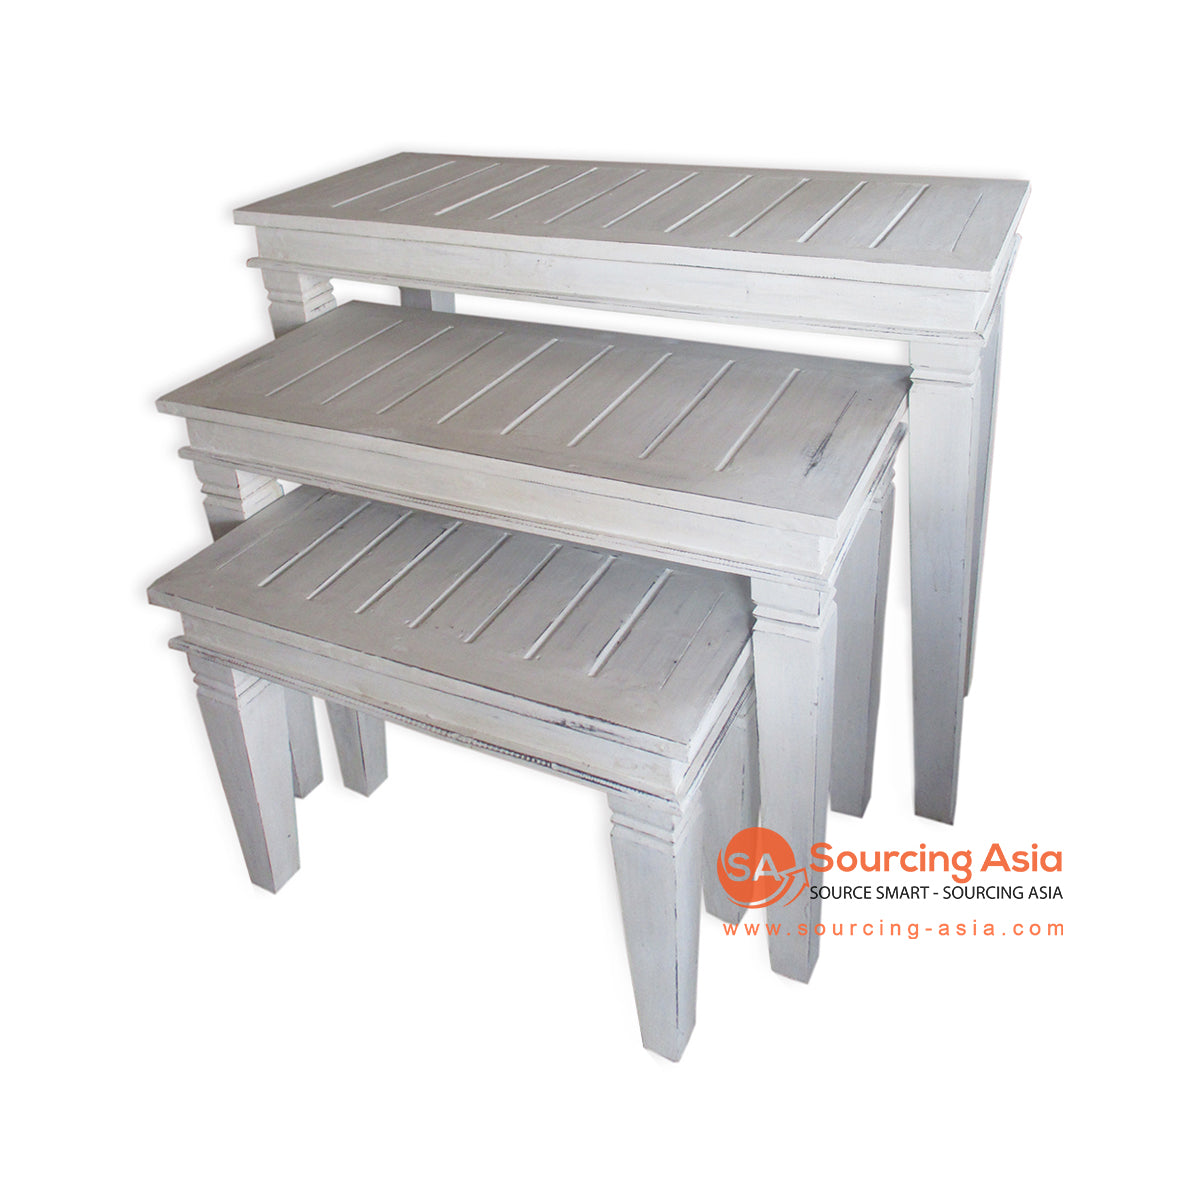 THE140WW SET OF 3 TABLE WHITE WASH